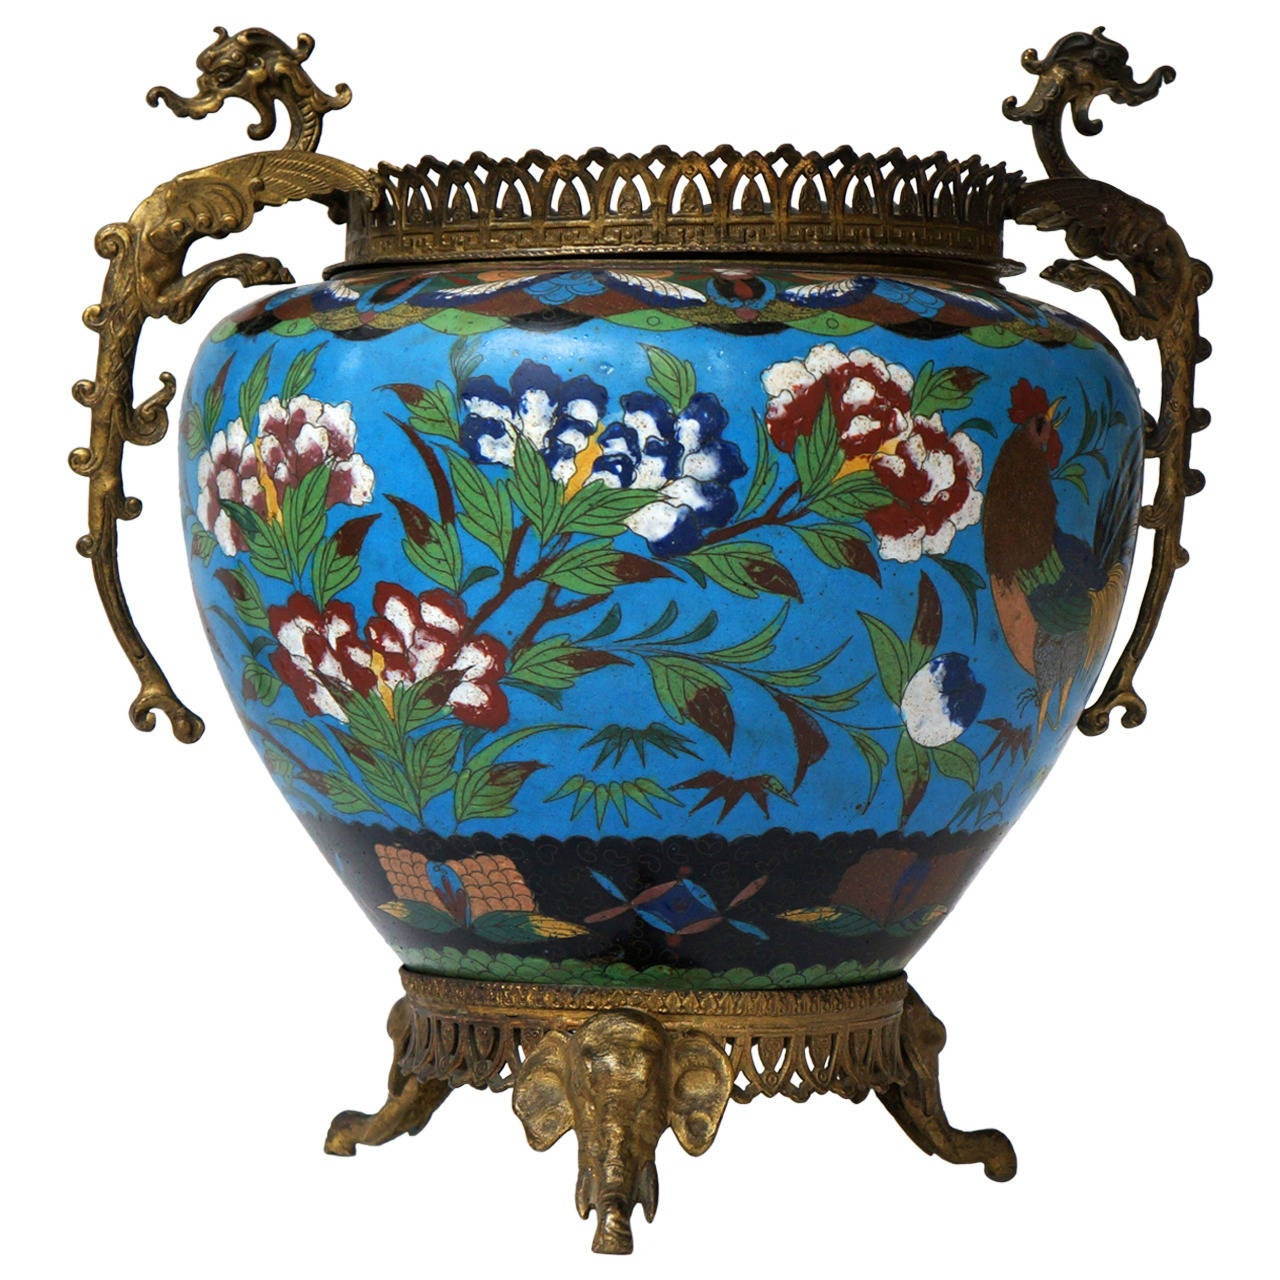 Large Chinese Cloisonn 233 Jardini 232 Re Or Planter Pot For Sale